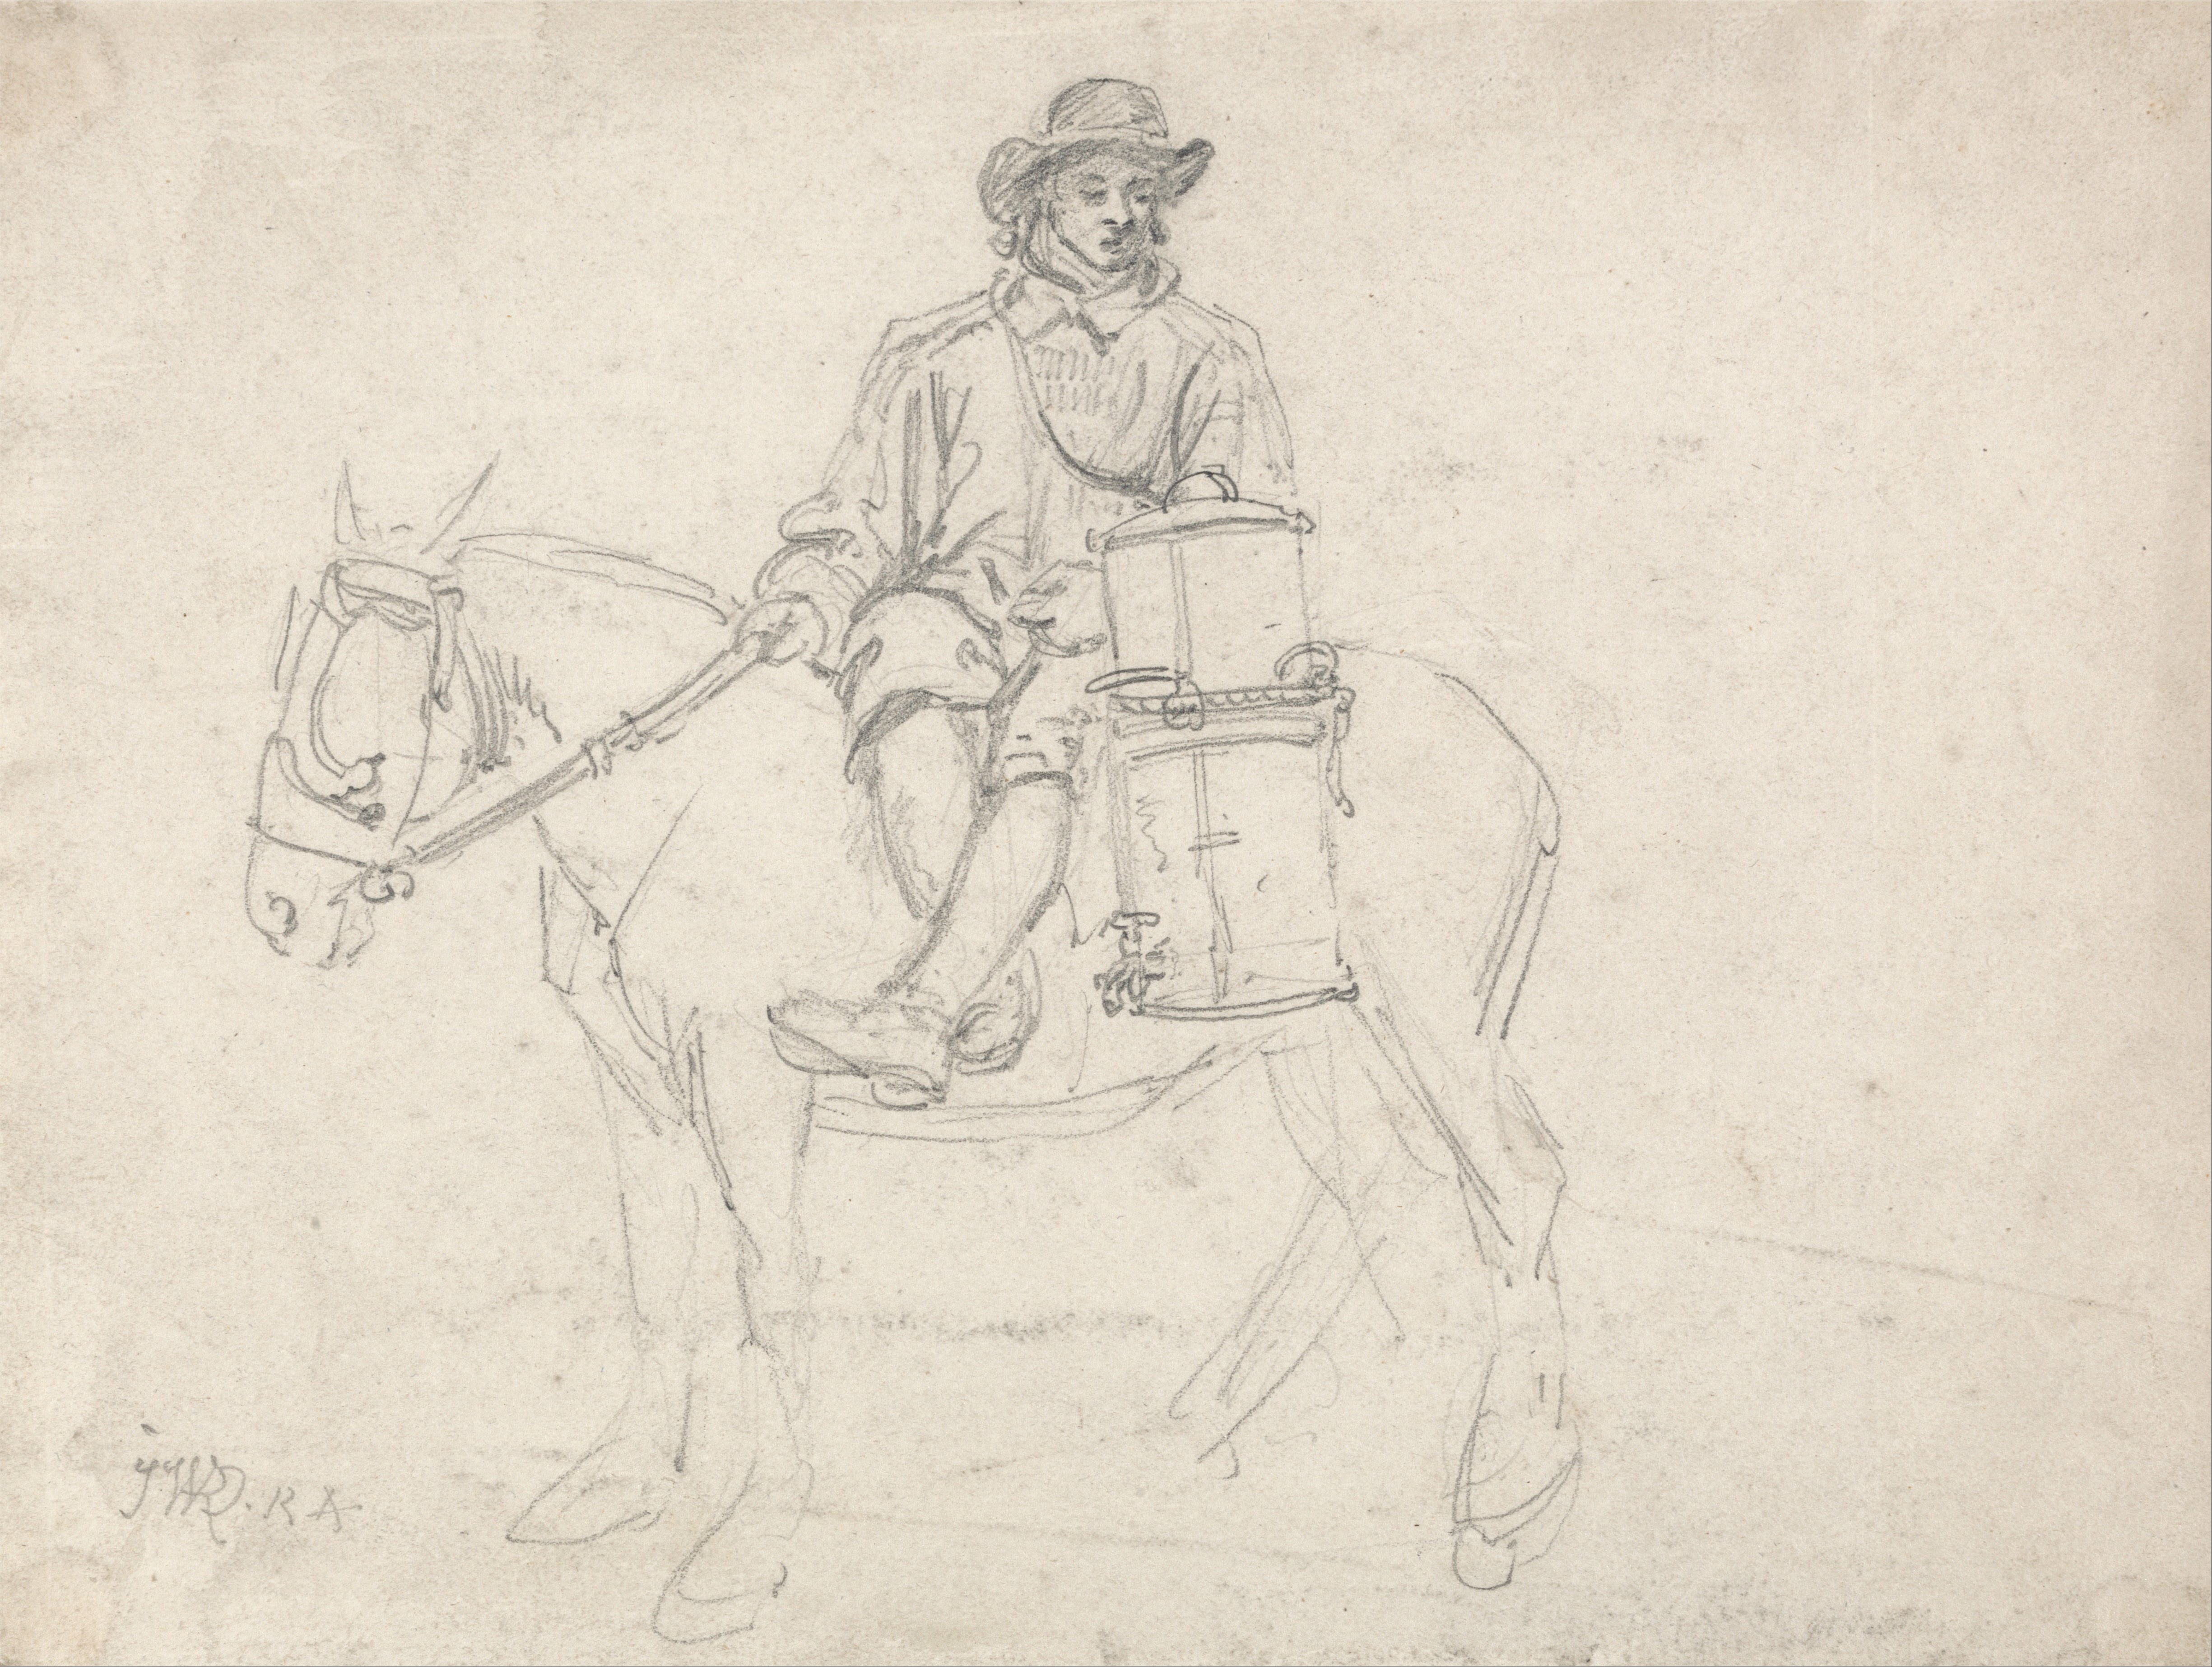 File:James Ward - A Farmhand Riding Side-saddle, Carrying an